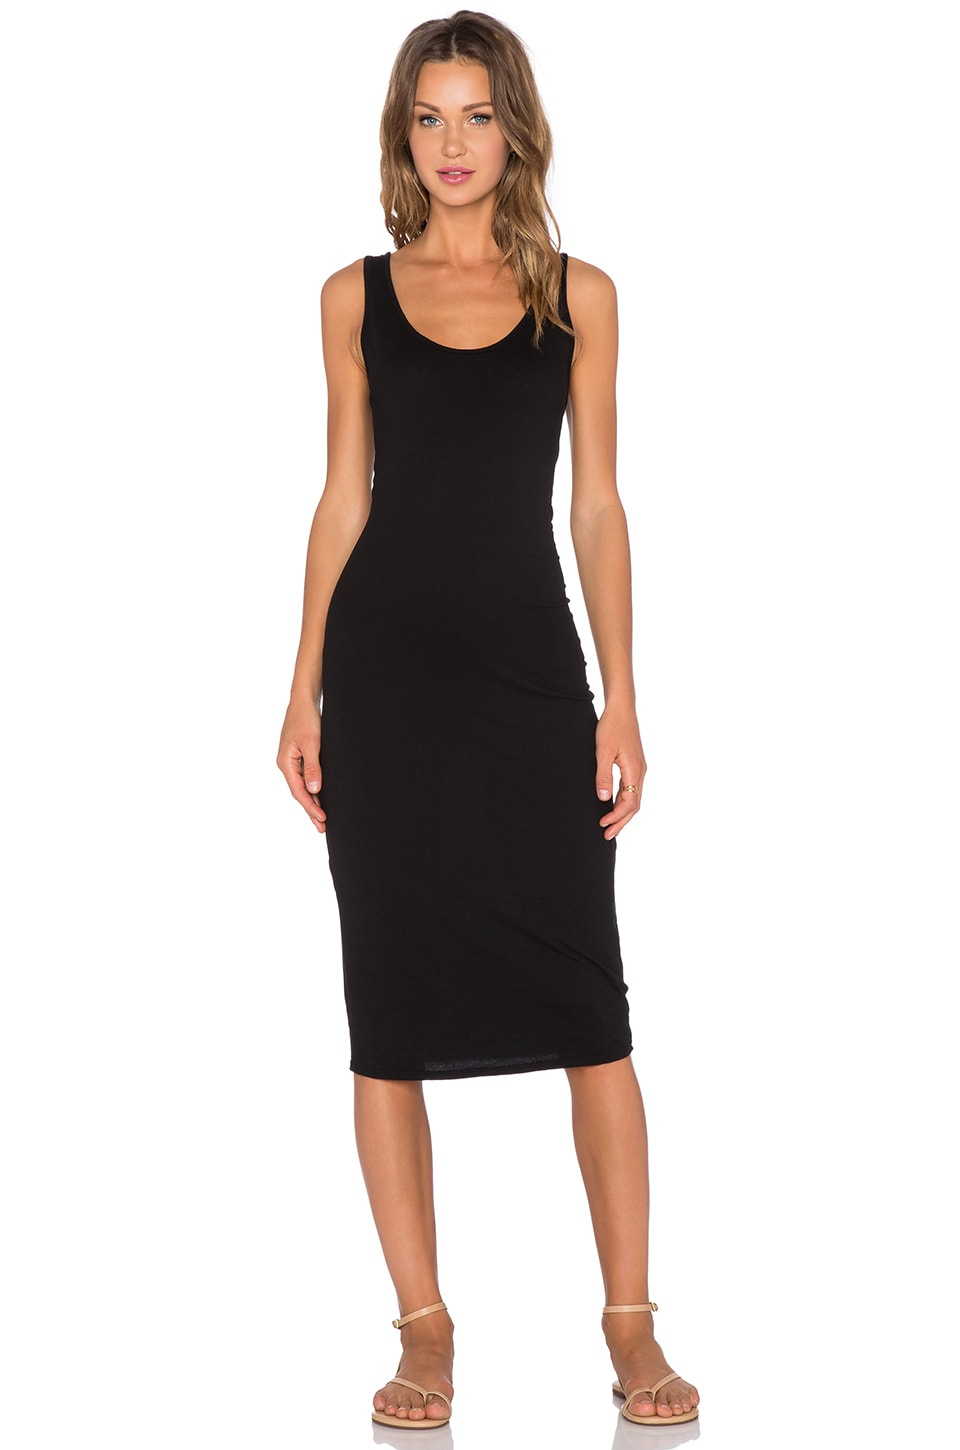 Nation LTD Lake Havasu Dress in Black